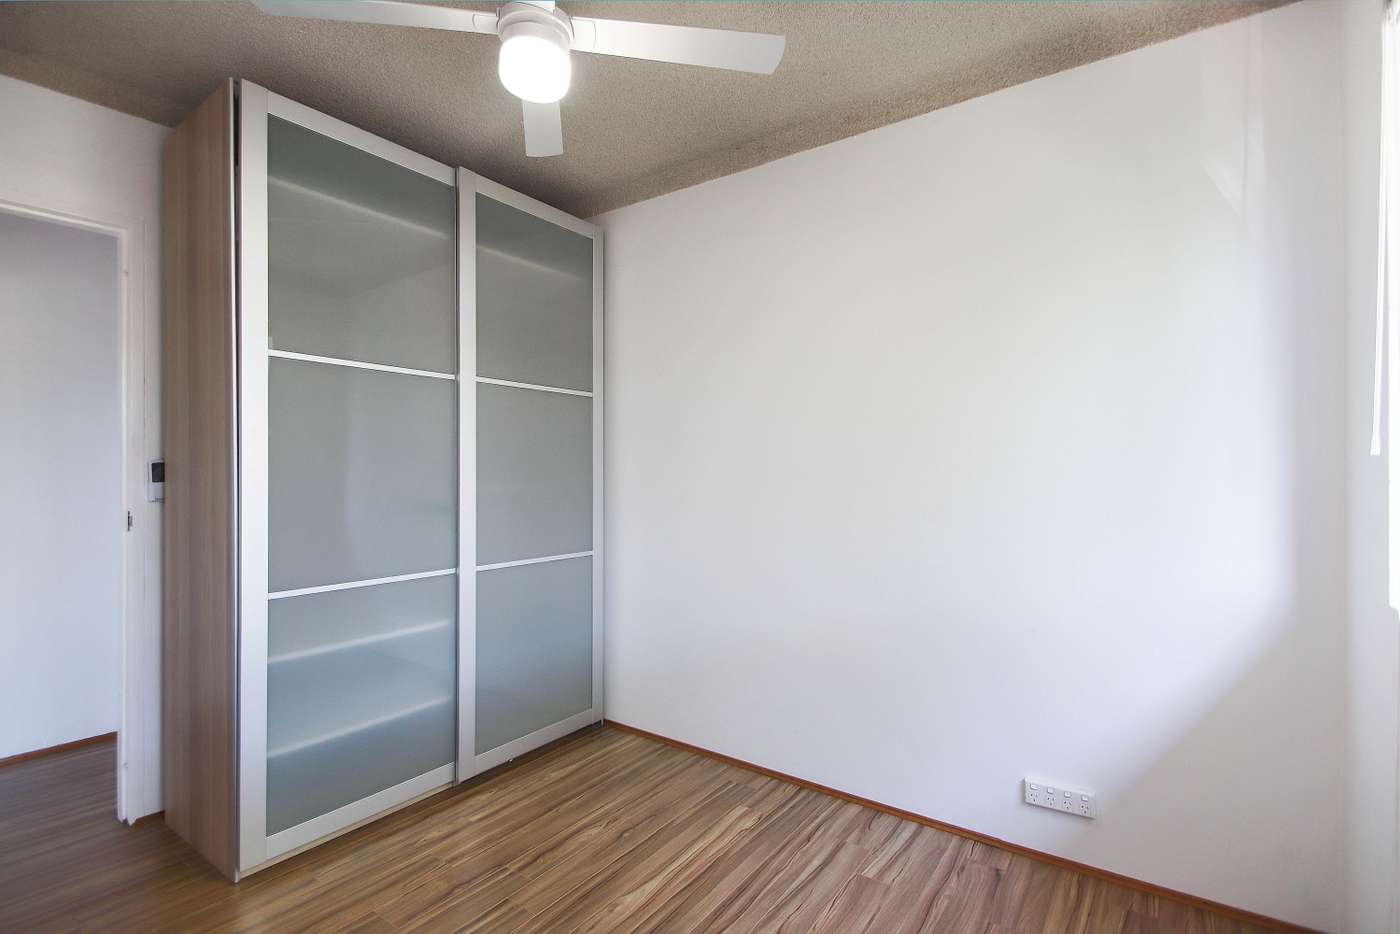 Sixth view of Homely apartment listing, 23/26-28 Orchard Street, West Ryde NSW 2114